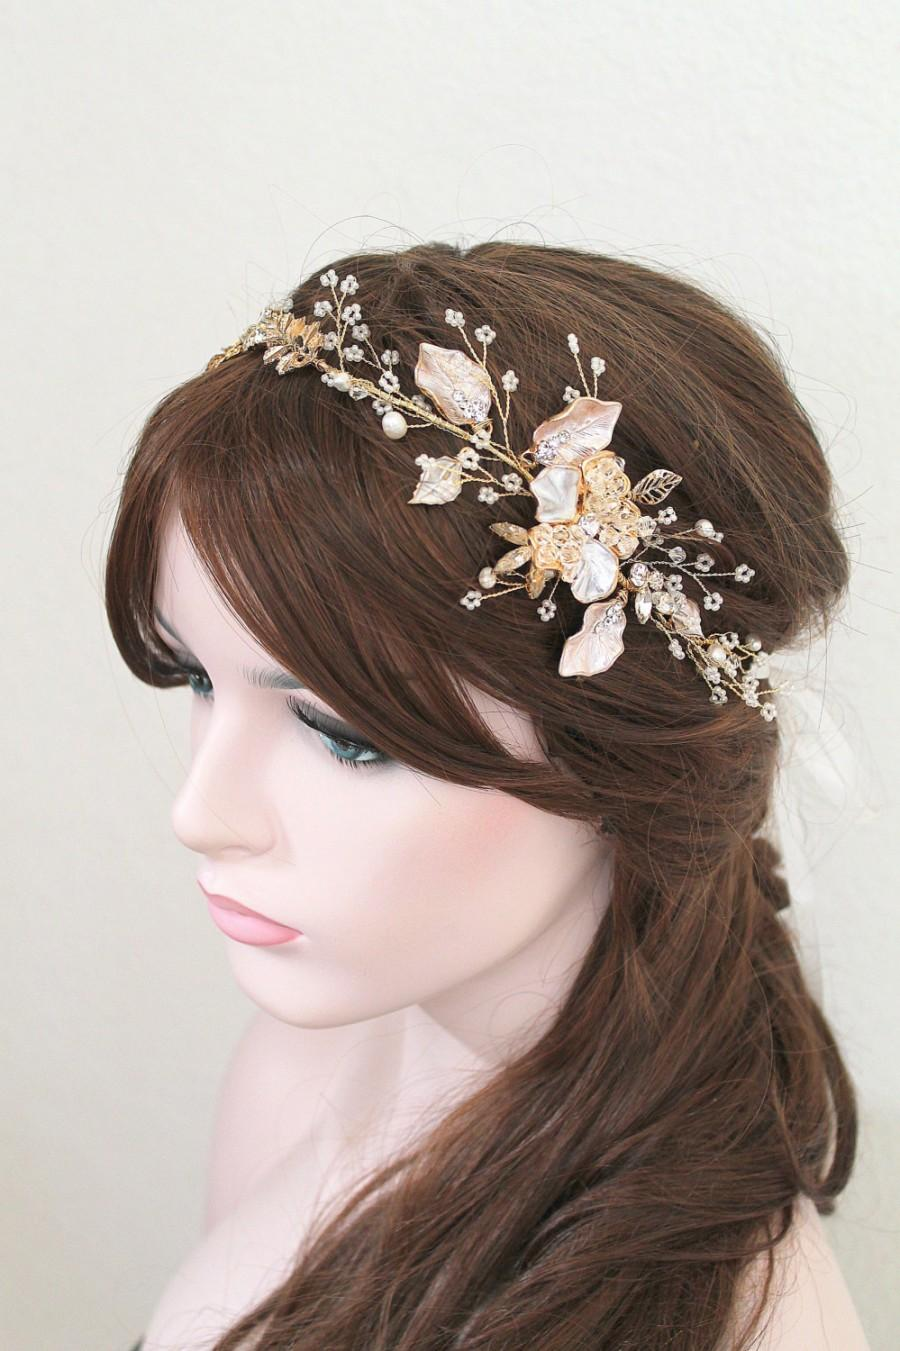 Hochzeit - Gold or Rose gold Leaf Vine Bridal Headpiece. Blush Boho Delicate Crystal Pearl wedding Wreath, Headband. Rhinestone Floral Hairpiece. BEA